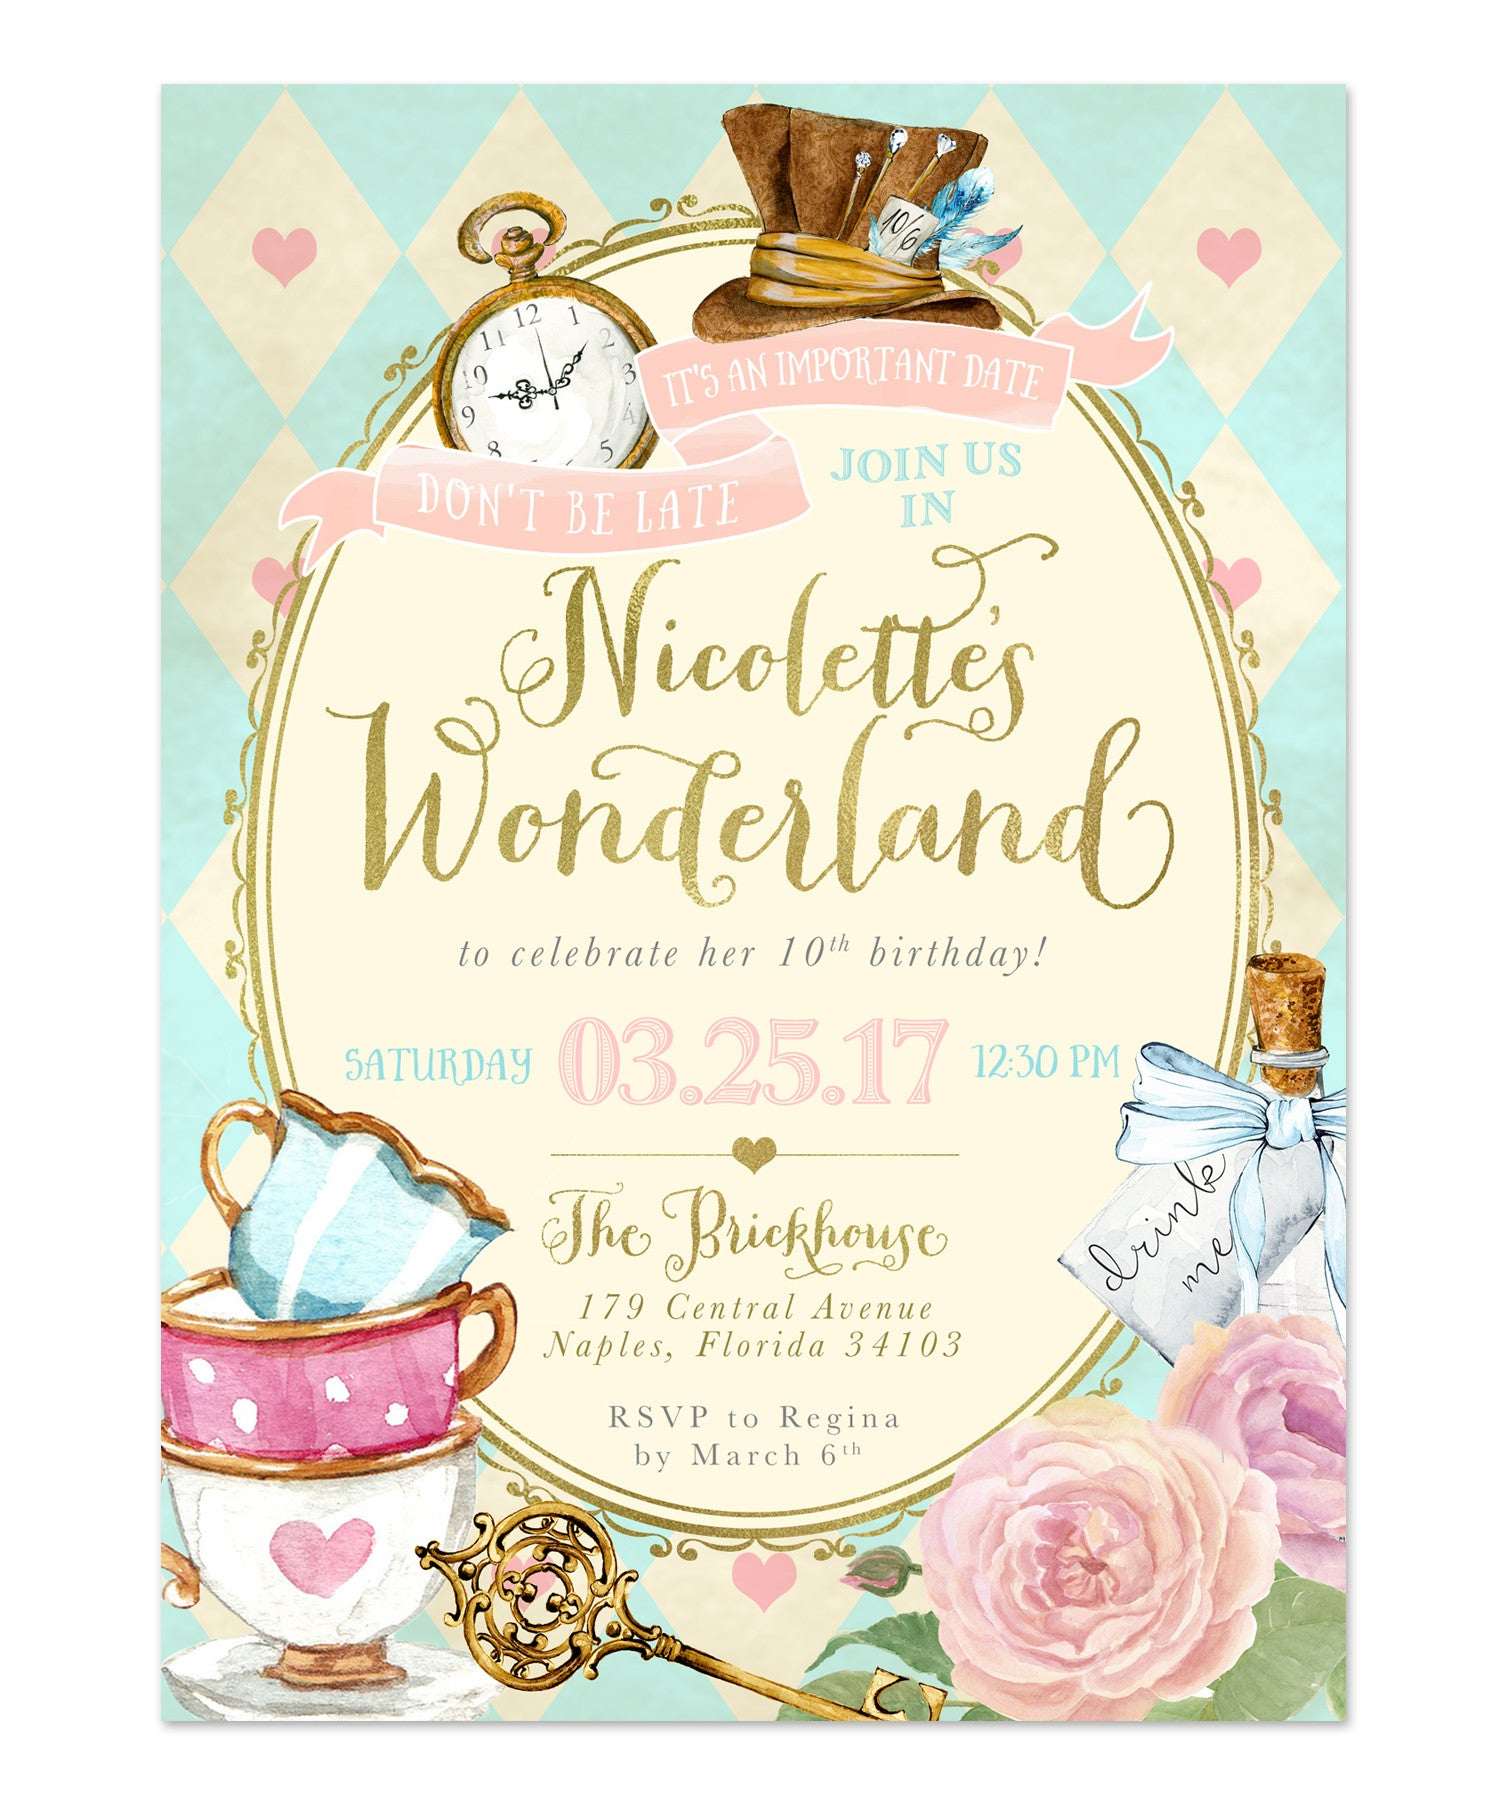 Alice in wonderland birthday party invitation girls themed alice in wonderland girls birthday party invitation filmwisefo Image collections